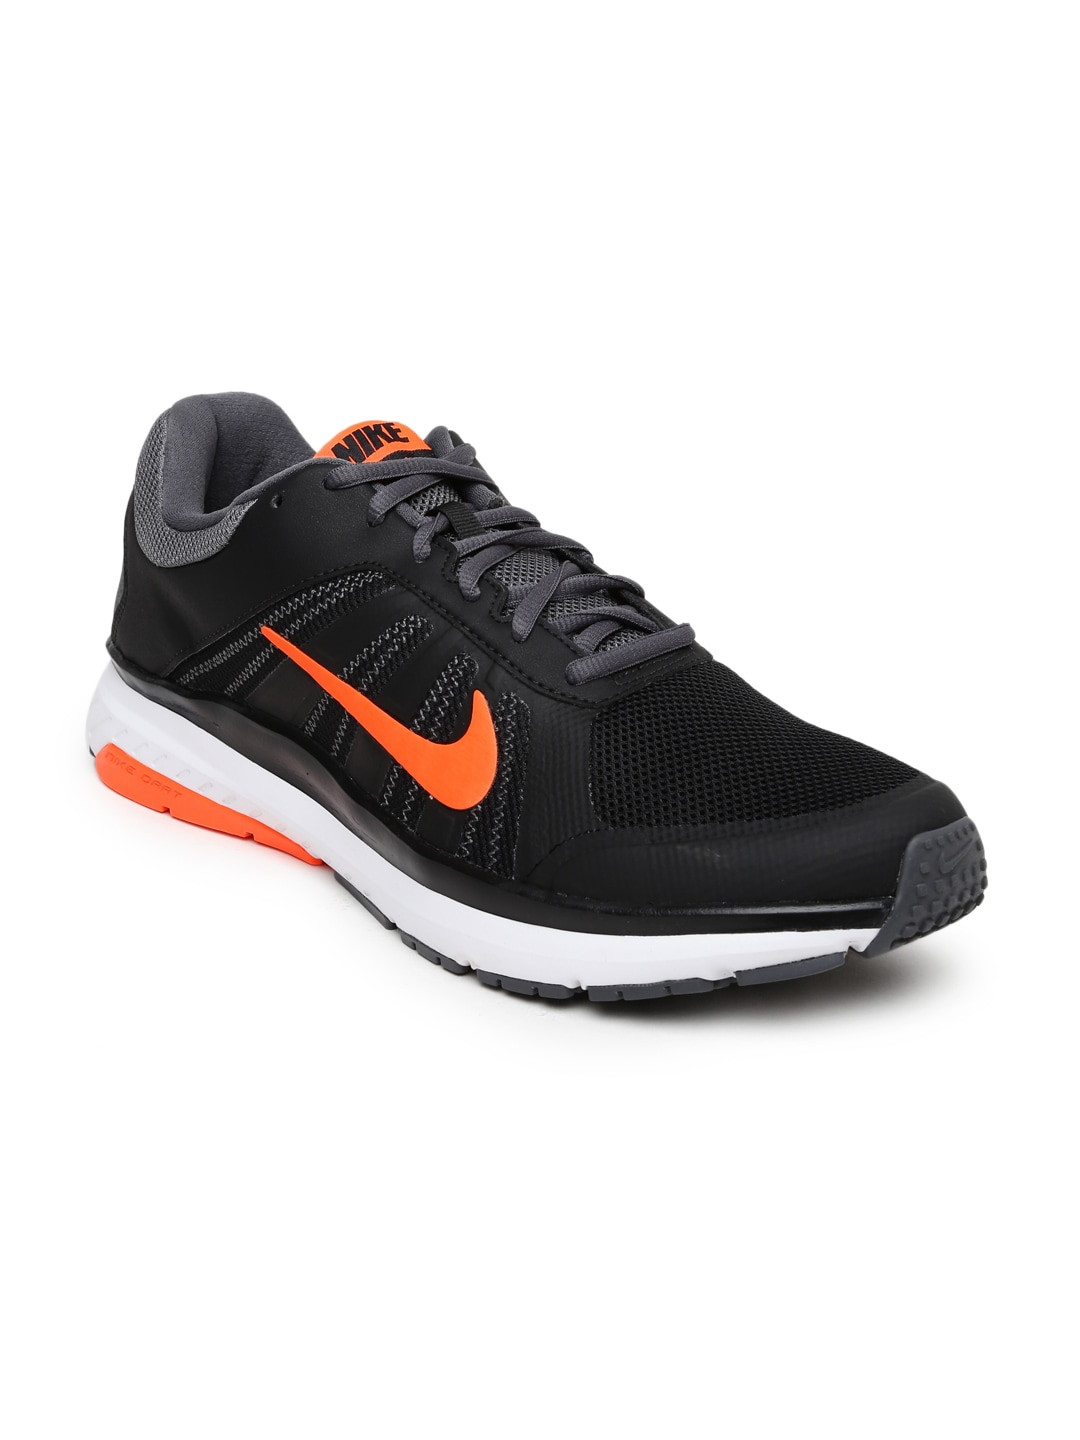 b0dc67283e2 Nike Sport Shoe - Buy Nike Sport Shoes At Best Price Online